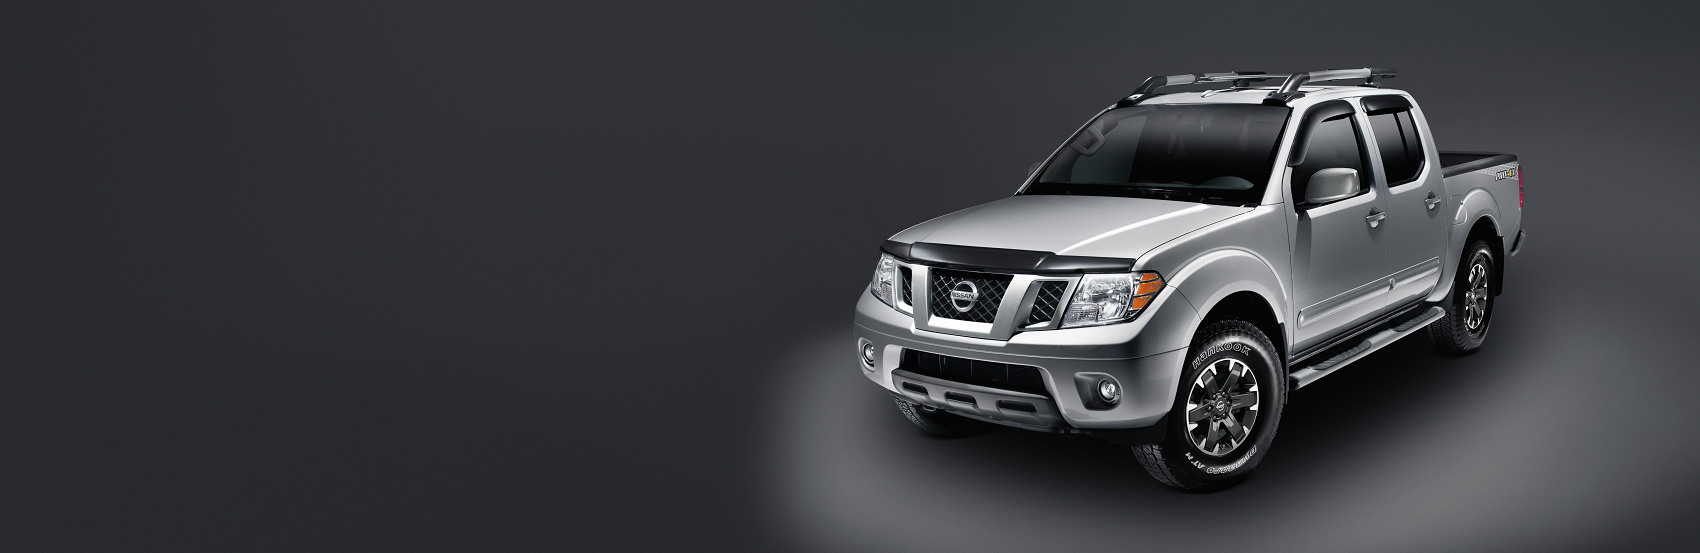 Gray Nissan Frontier